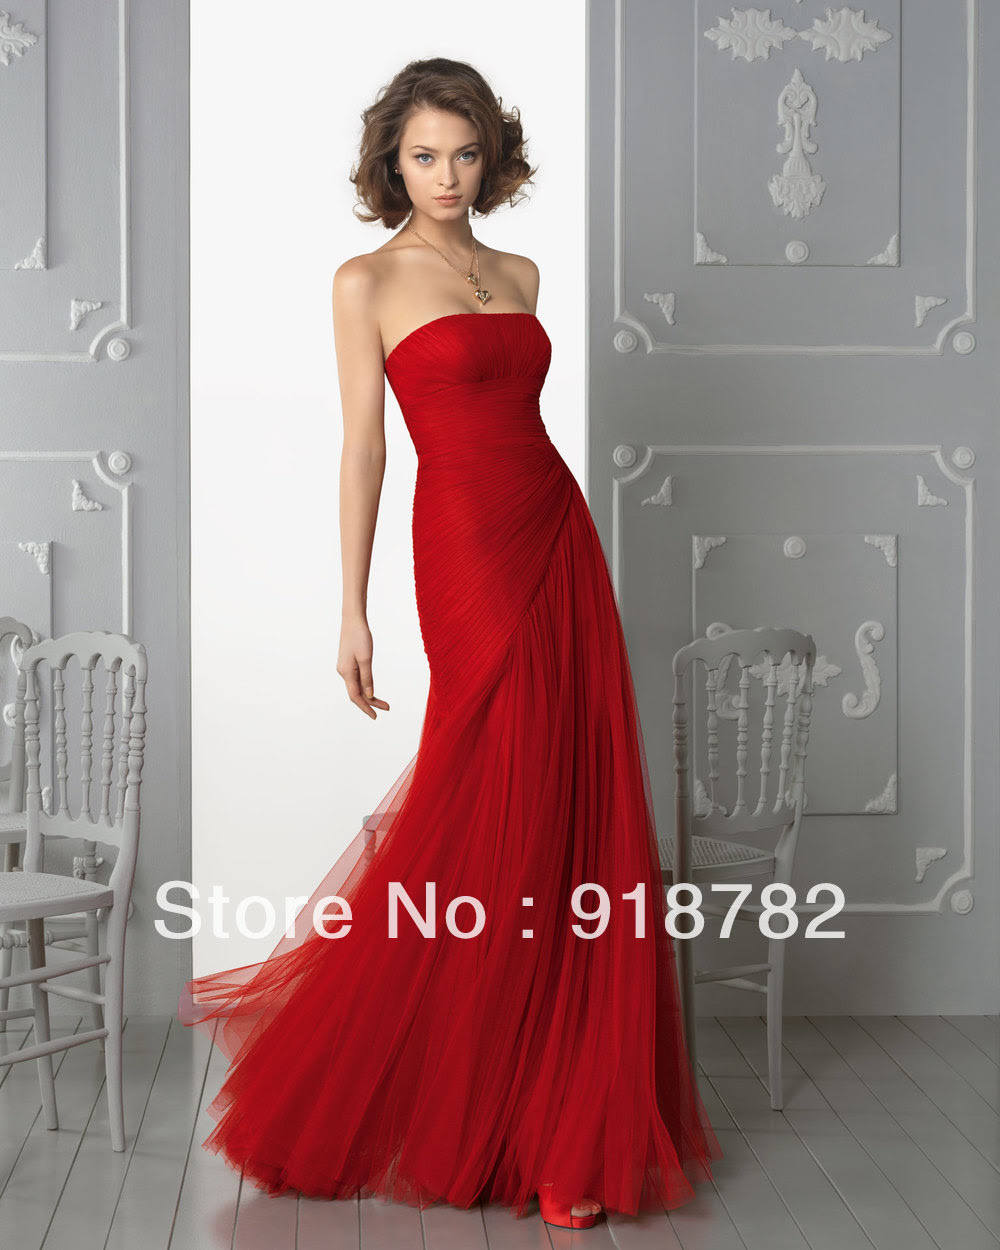 Red dress evening wear